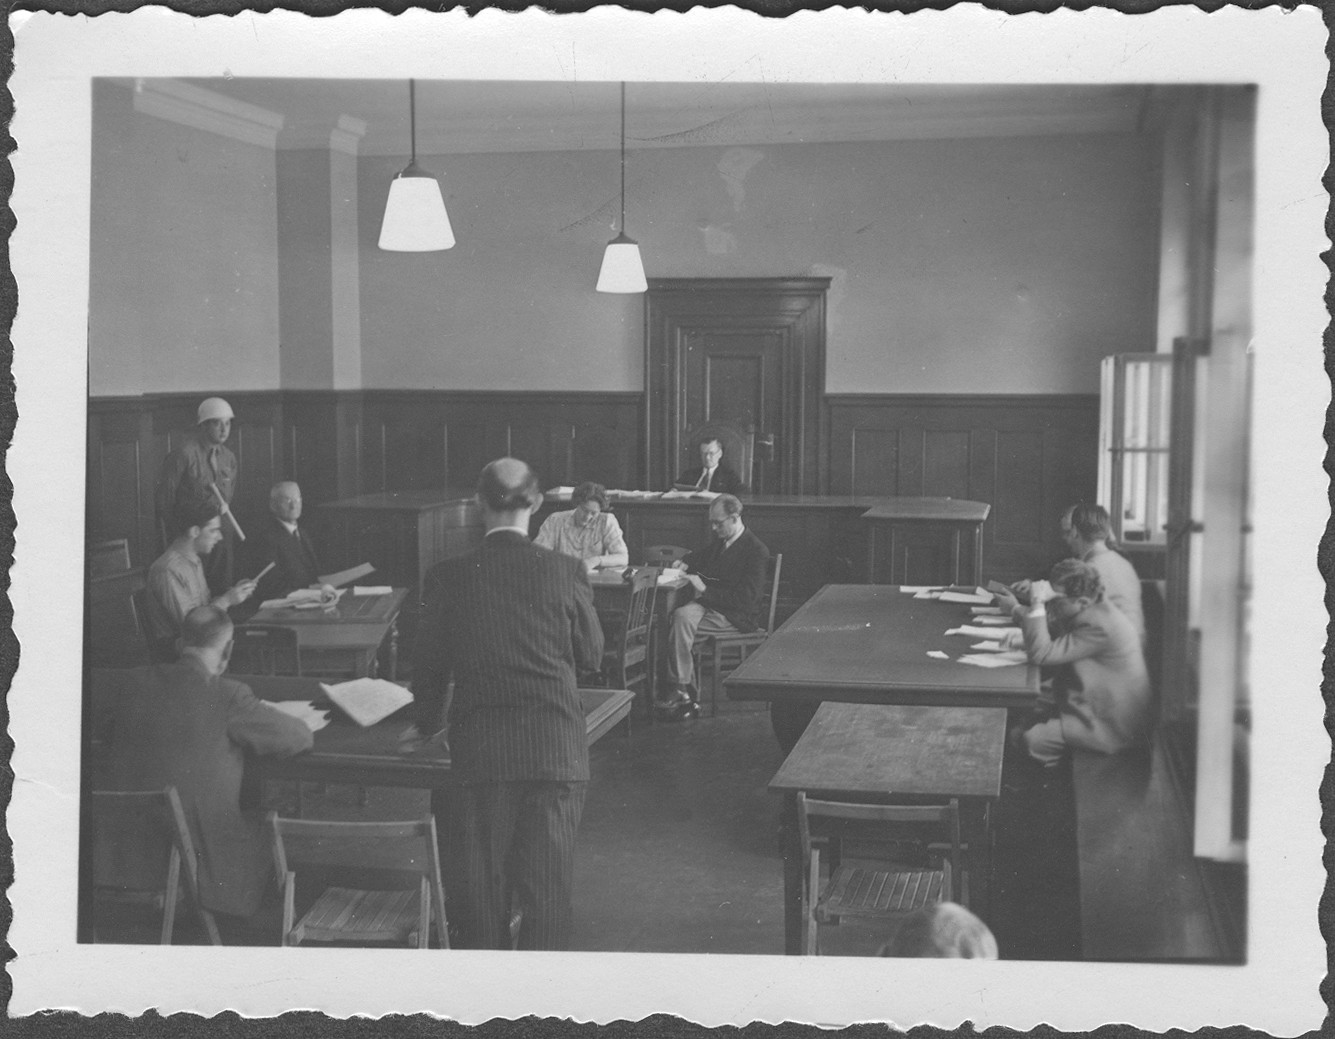 Interrogation of General Franz Halder by defense counsel Dr. Hans Laternser (standing with back to the camera) at the IMT Nuremberg commission hearings investigating indicted Nazi organizations.   Commissioner McIlwraith can be seen in the background.